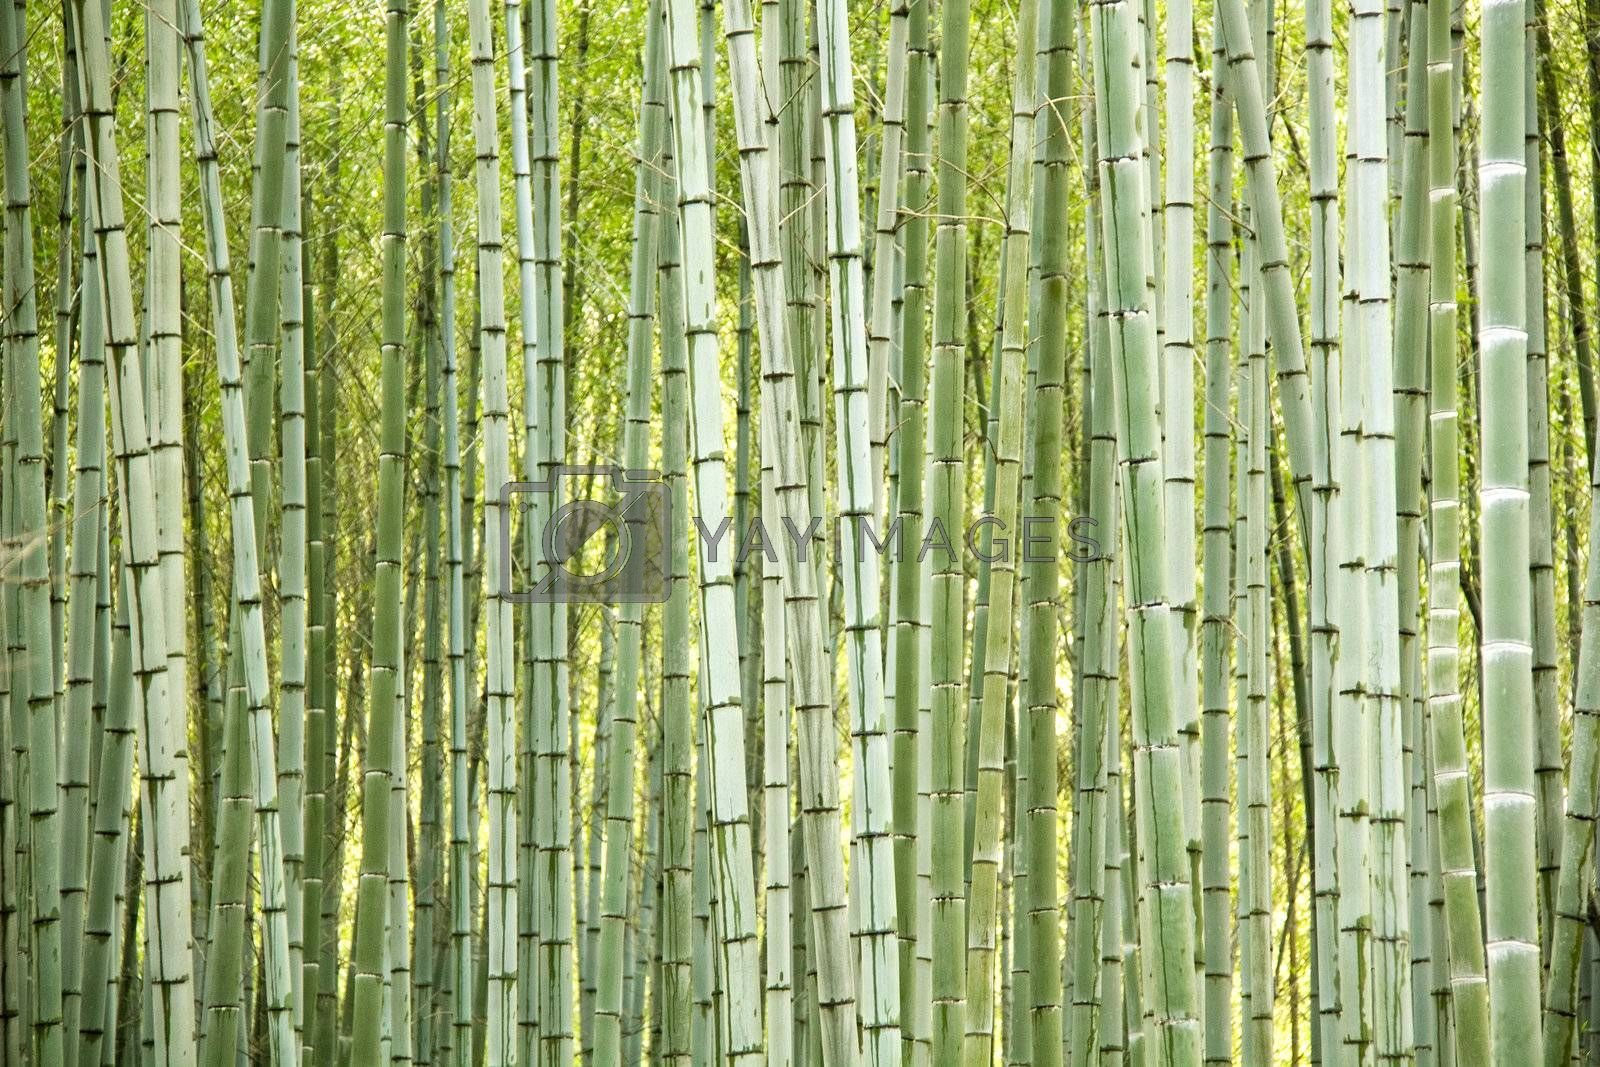 Natural bamboo trees as perfect abstract background